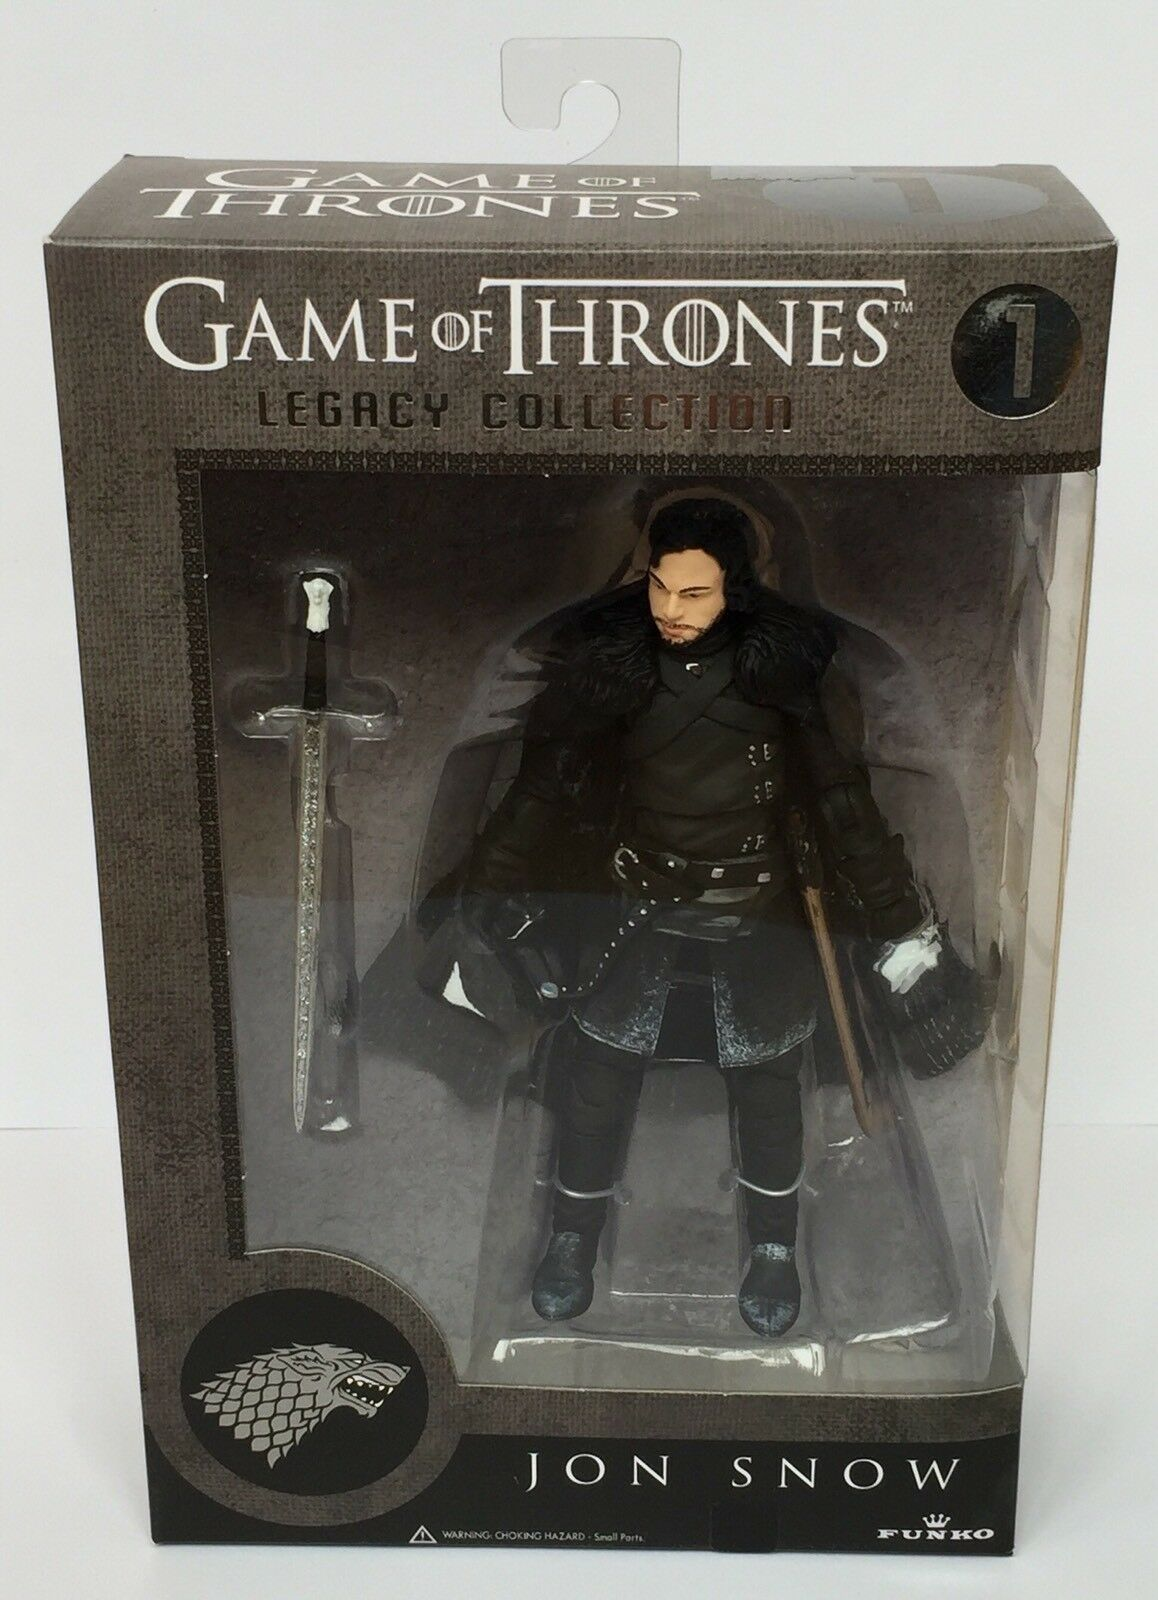 Game of thrones funko vermächtnis actionfigur jon snow neue